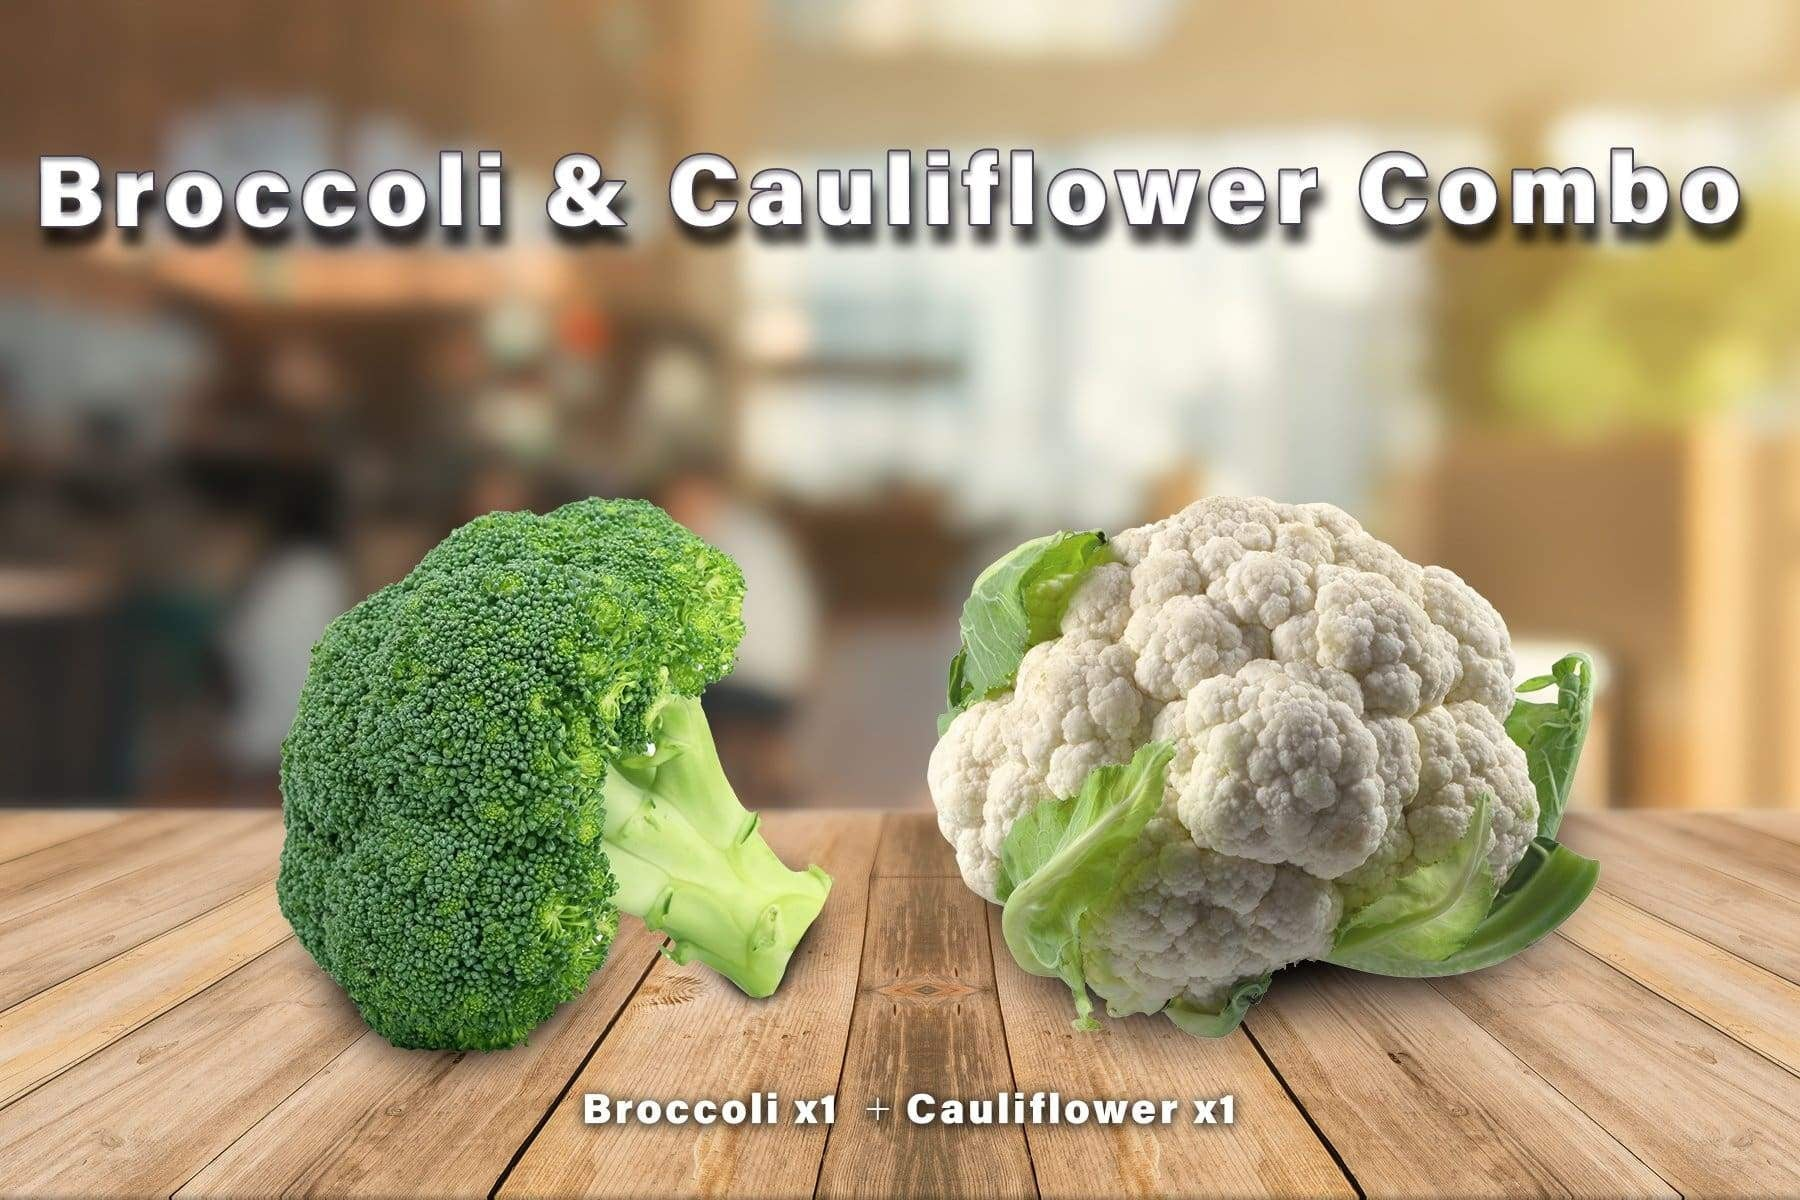 Penang Grocery Store Online Next Day Delivery is Offering Broccoli & Cauliflower Combo